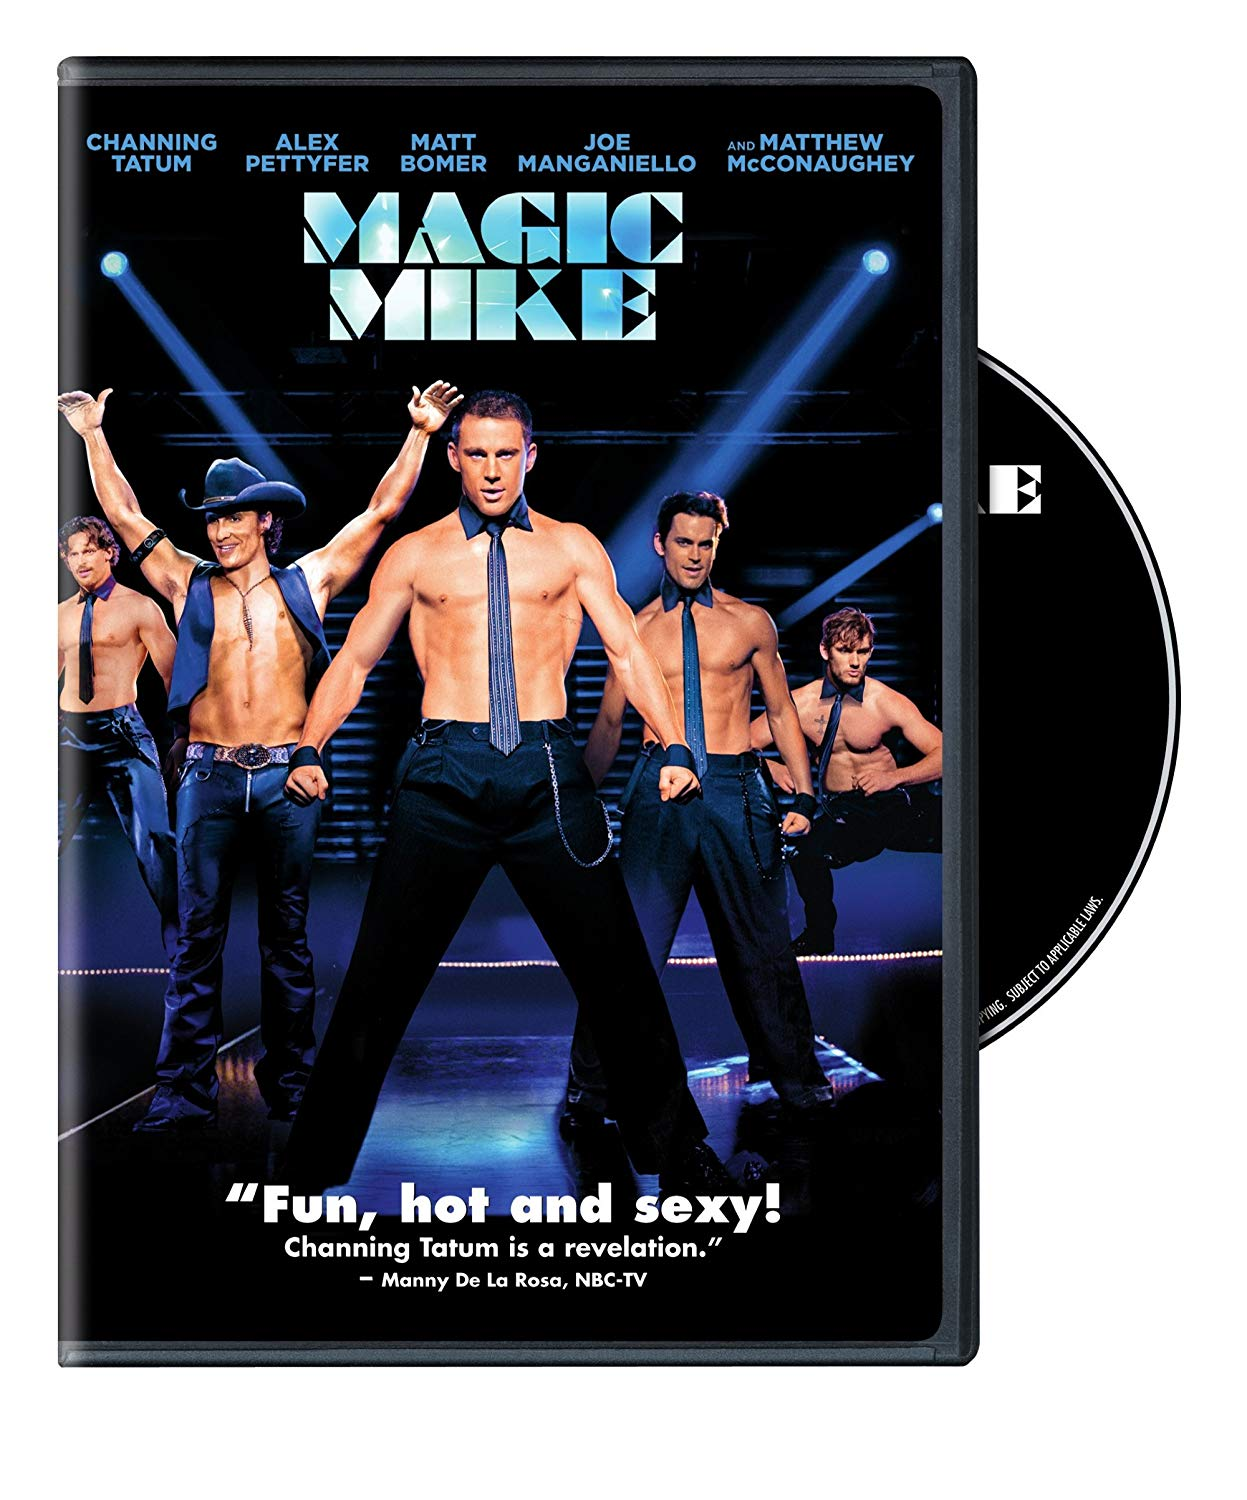 Channing Tatum, Matt Bomer, Matthew McConaughey, Joe Manganiello, Magic Mike